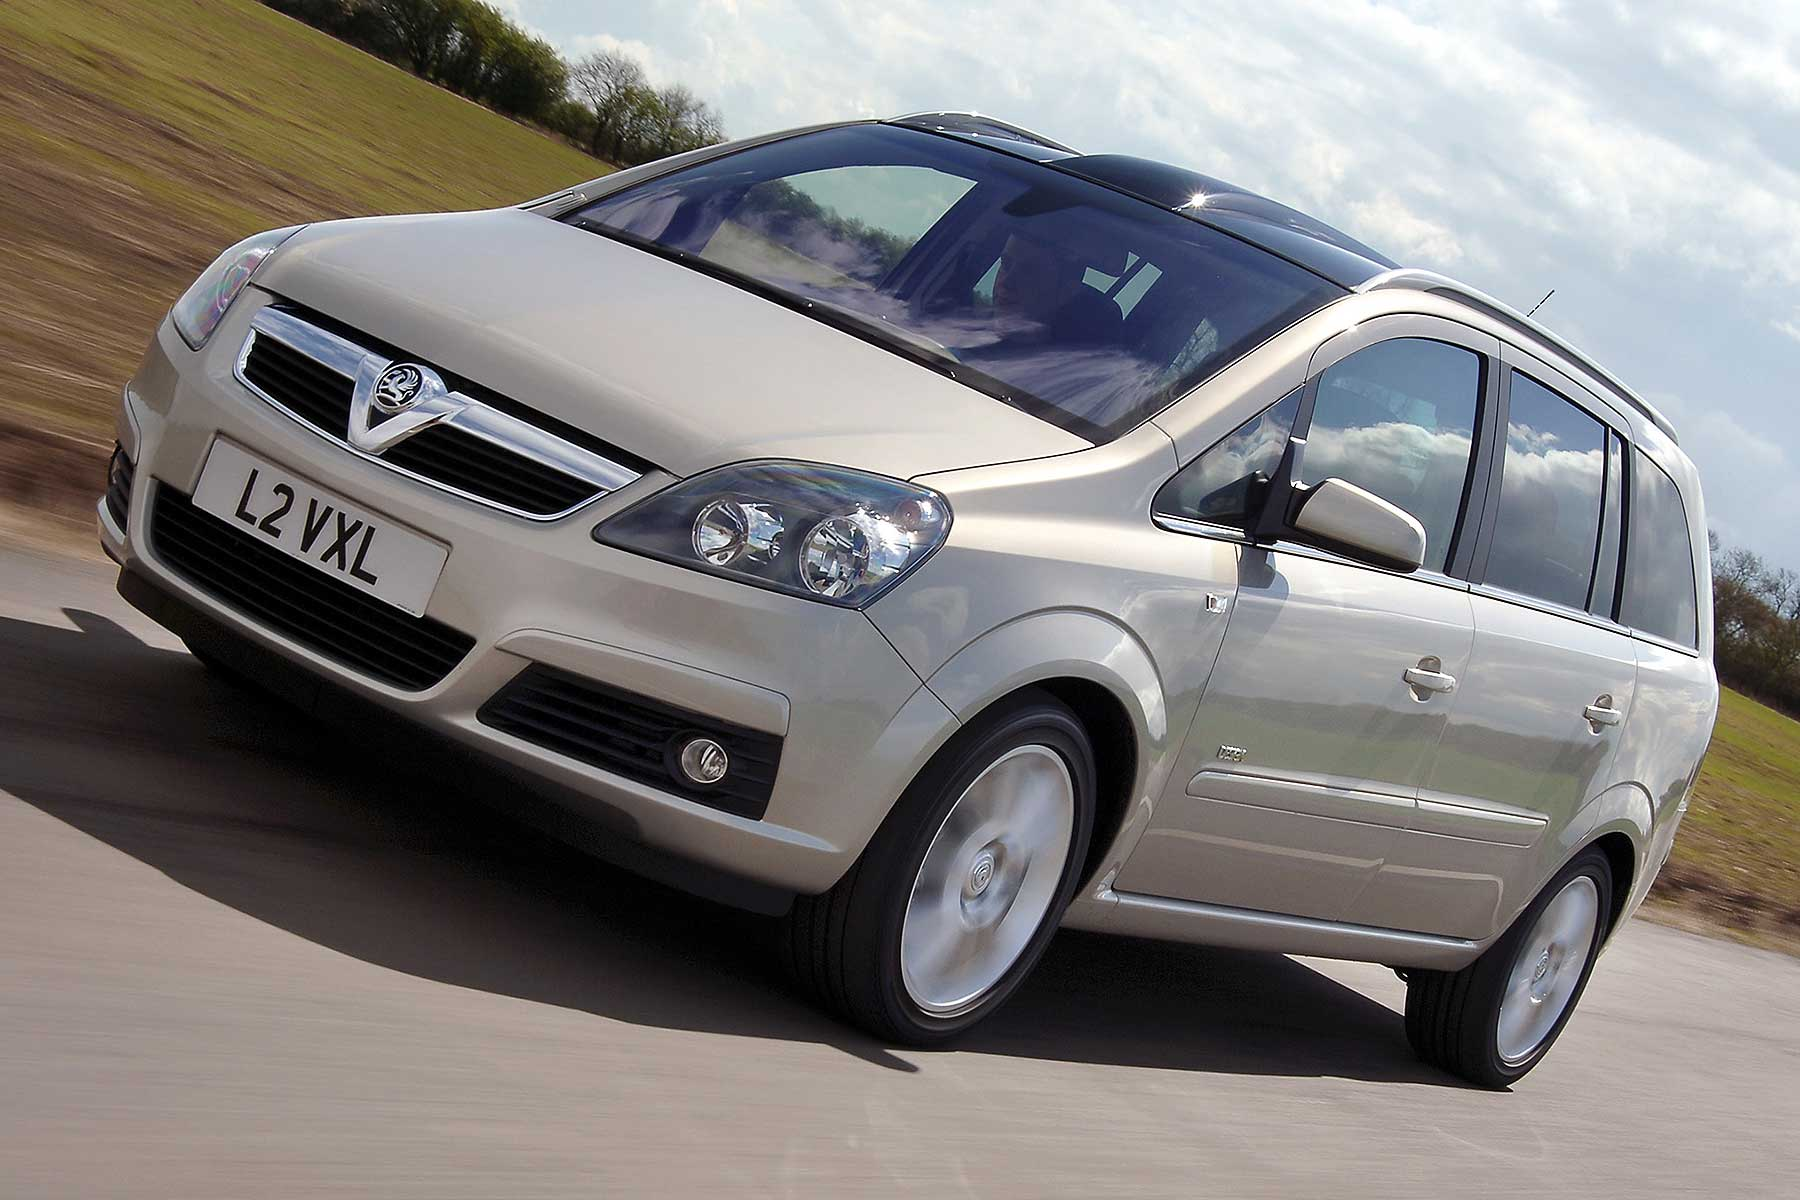 Vauxhall Zafira New Car Deals Vauxhall Offers Free Zafira Safety Check After Reports Of